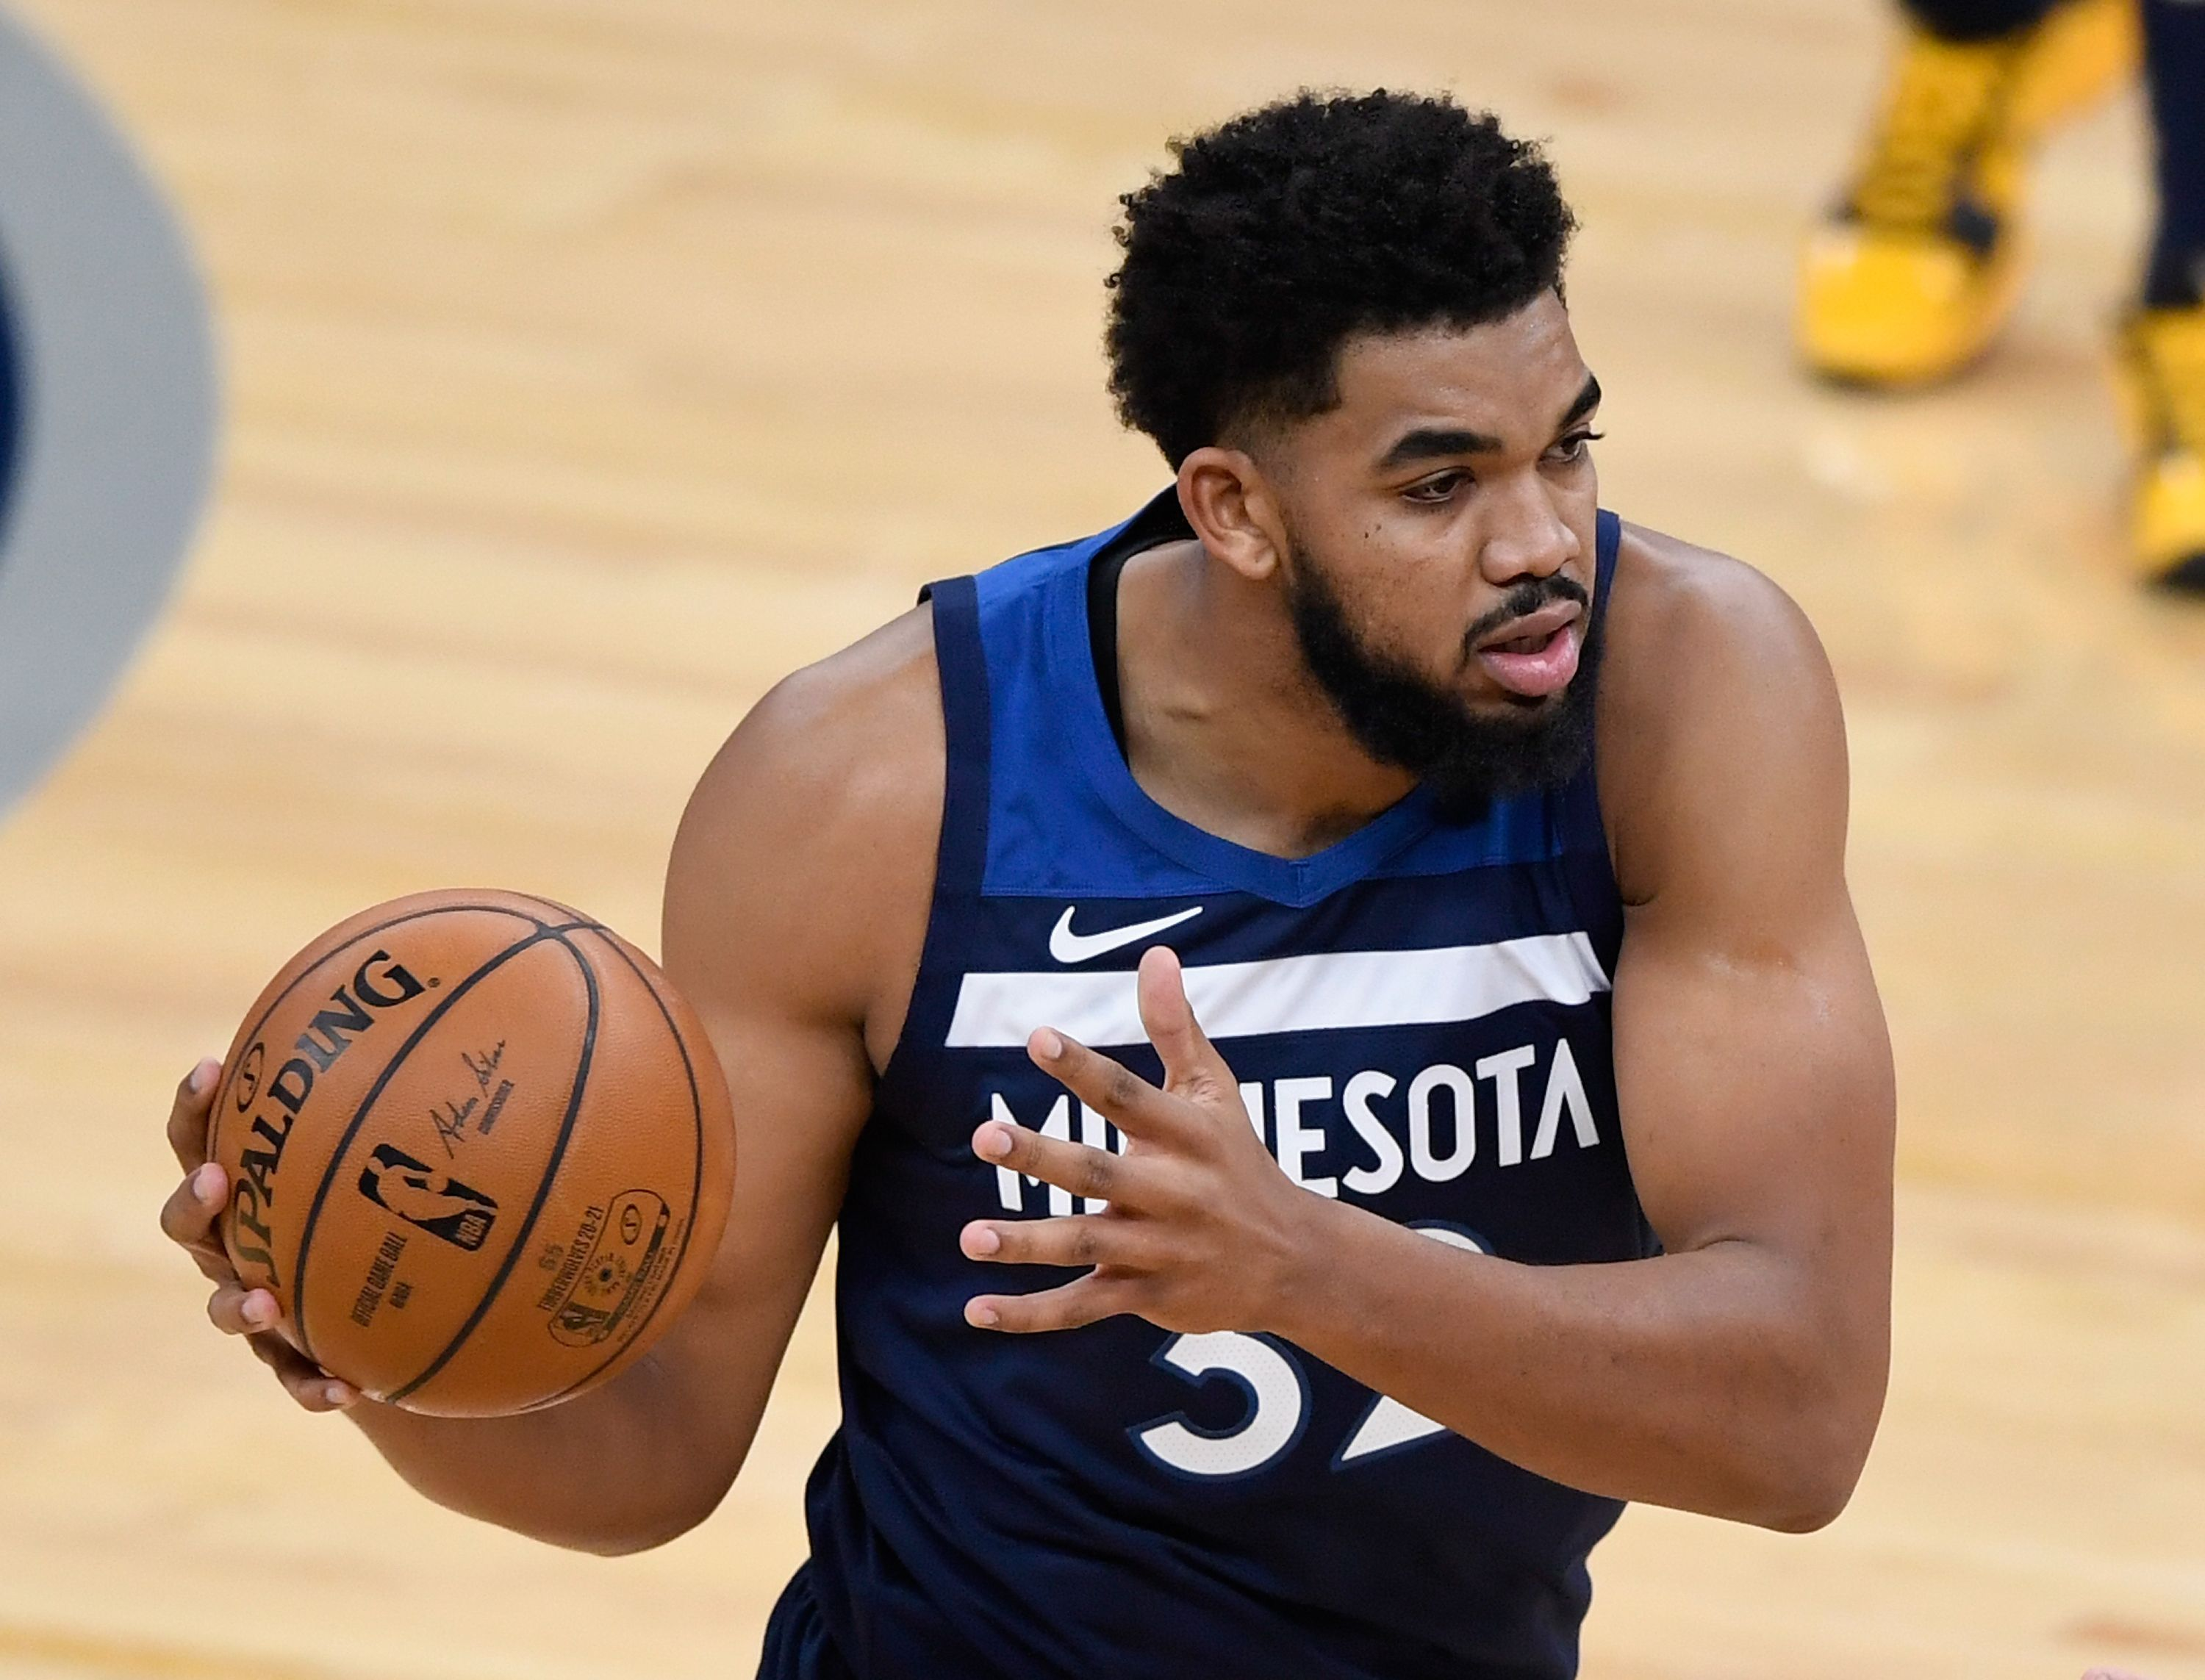 Karl-Anthony Towns finding an open teammate